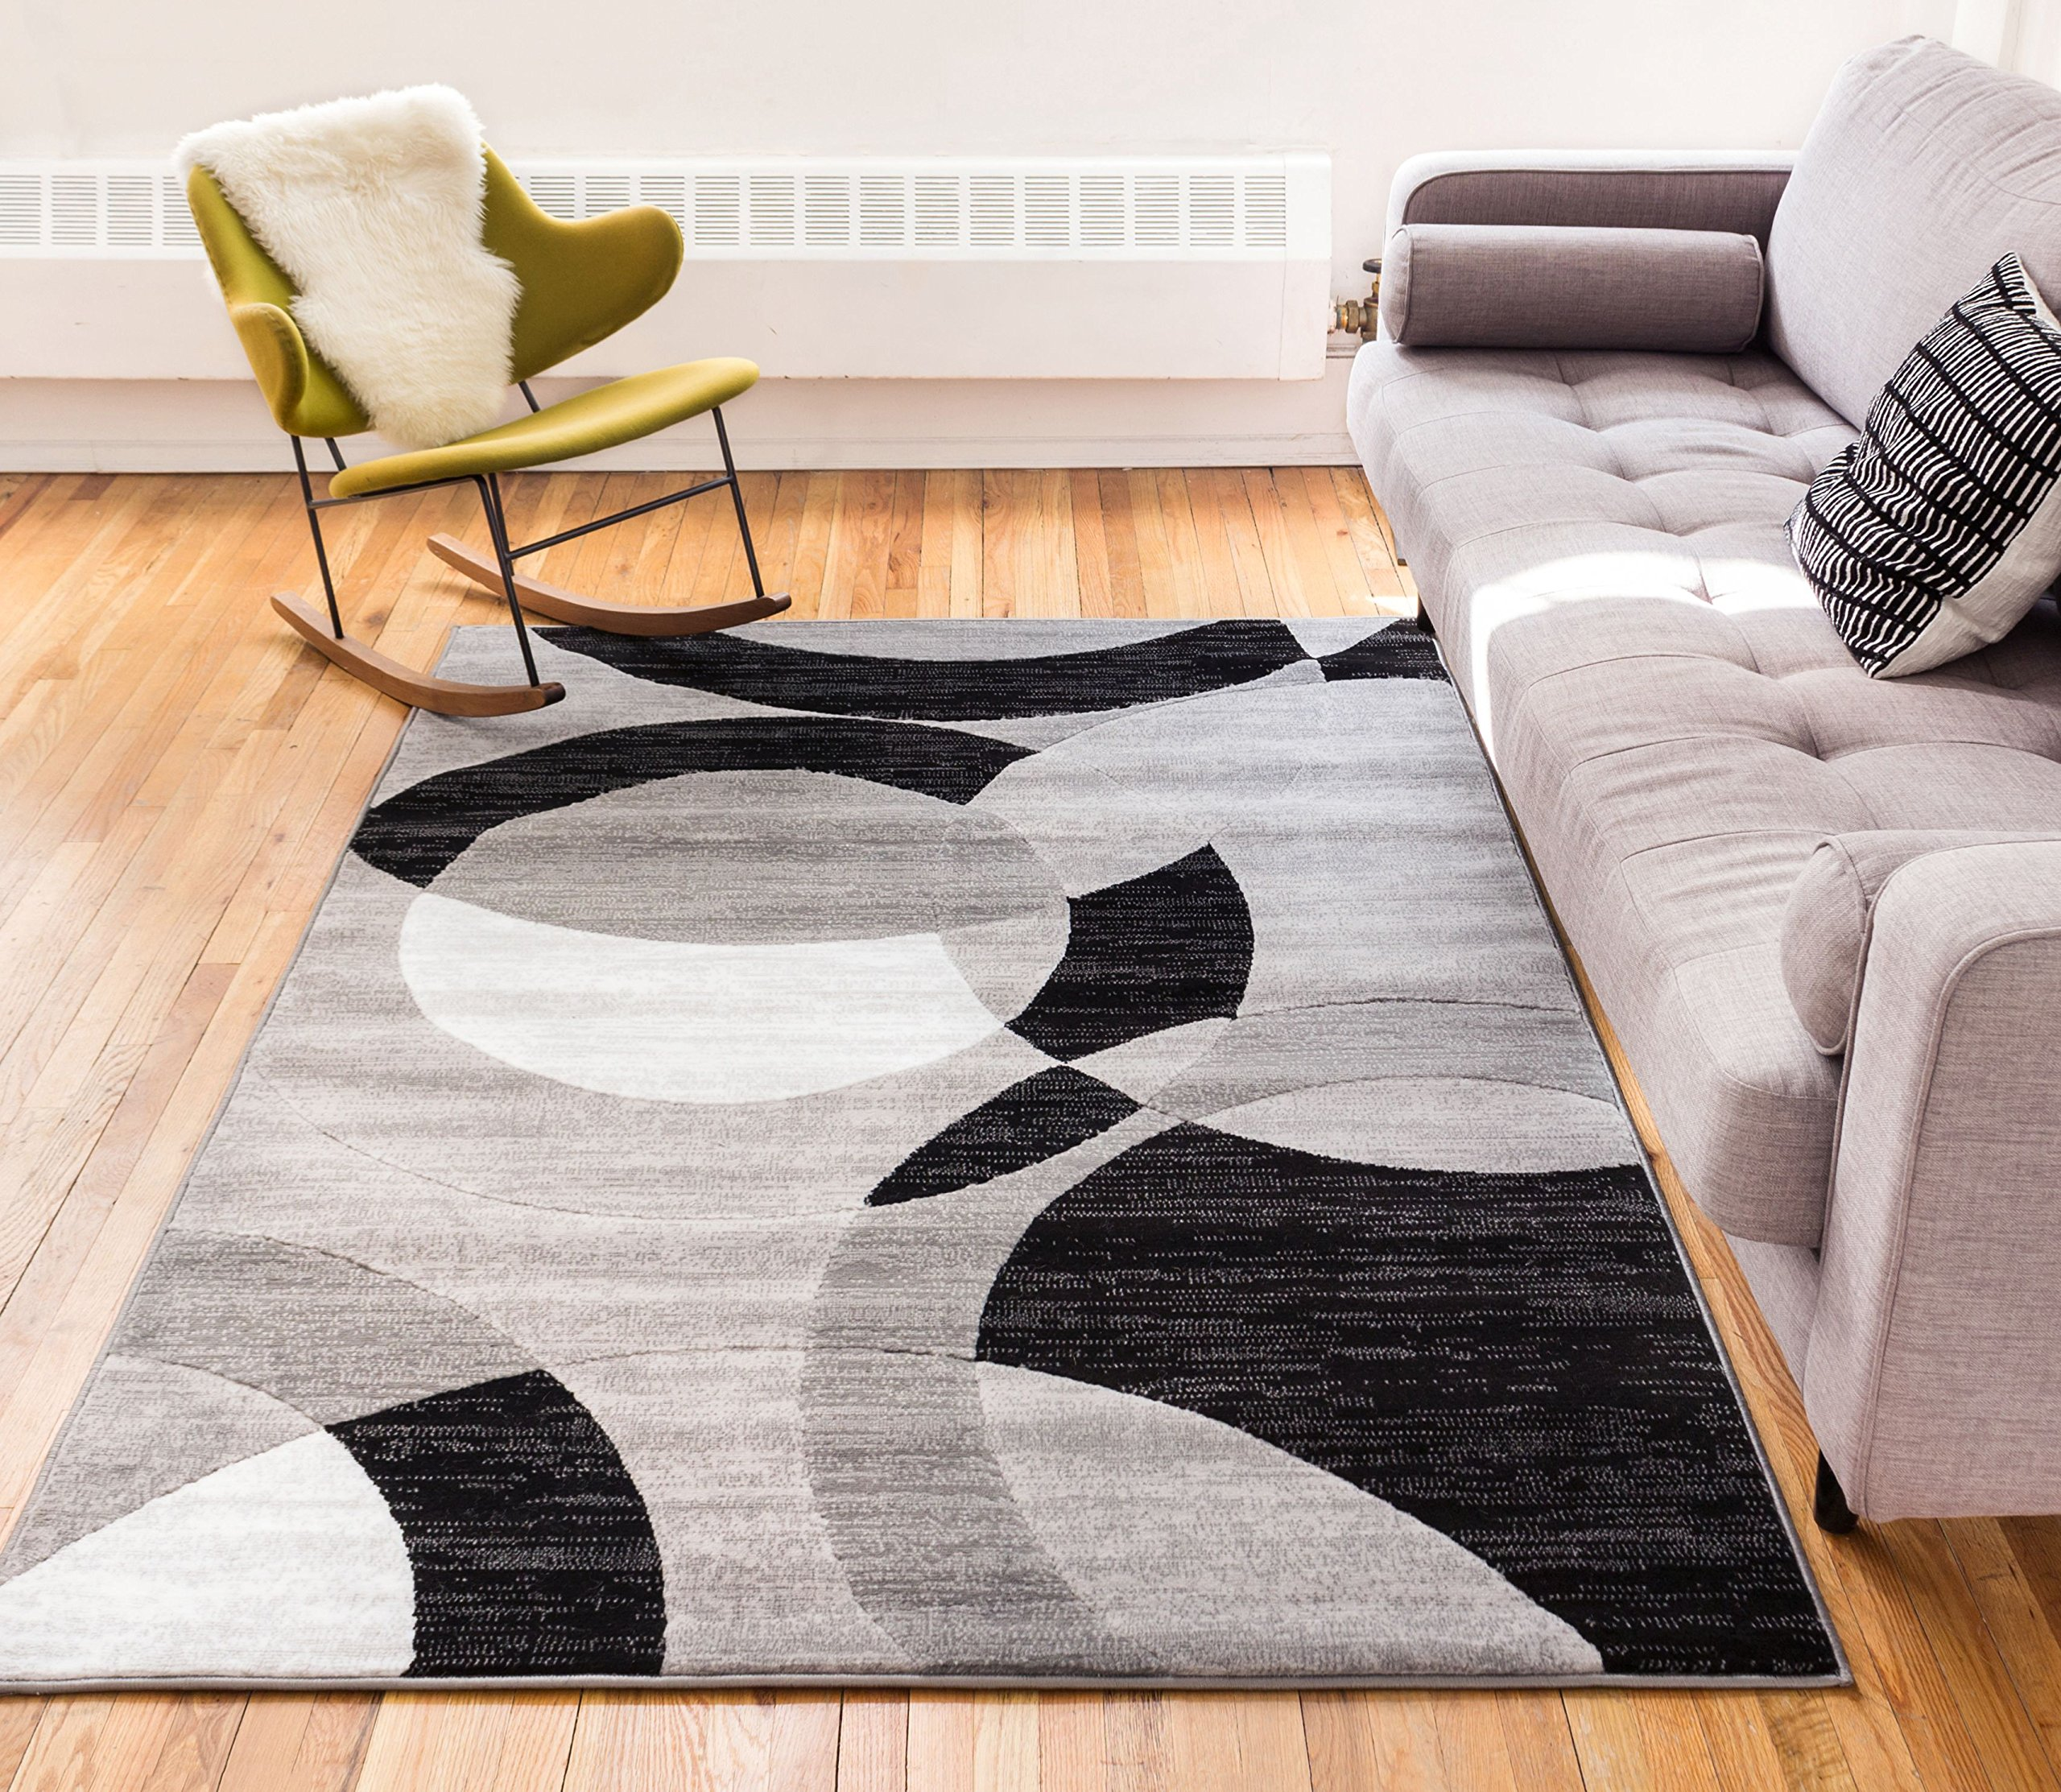 Well Woven Jackpot Grey Geometric Modern Casual Abstract Boxes Lines Circles 8x10 (7'10'' x 9'10'') Area Rug Thick Soft Plush Shed Free by Well Woven